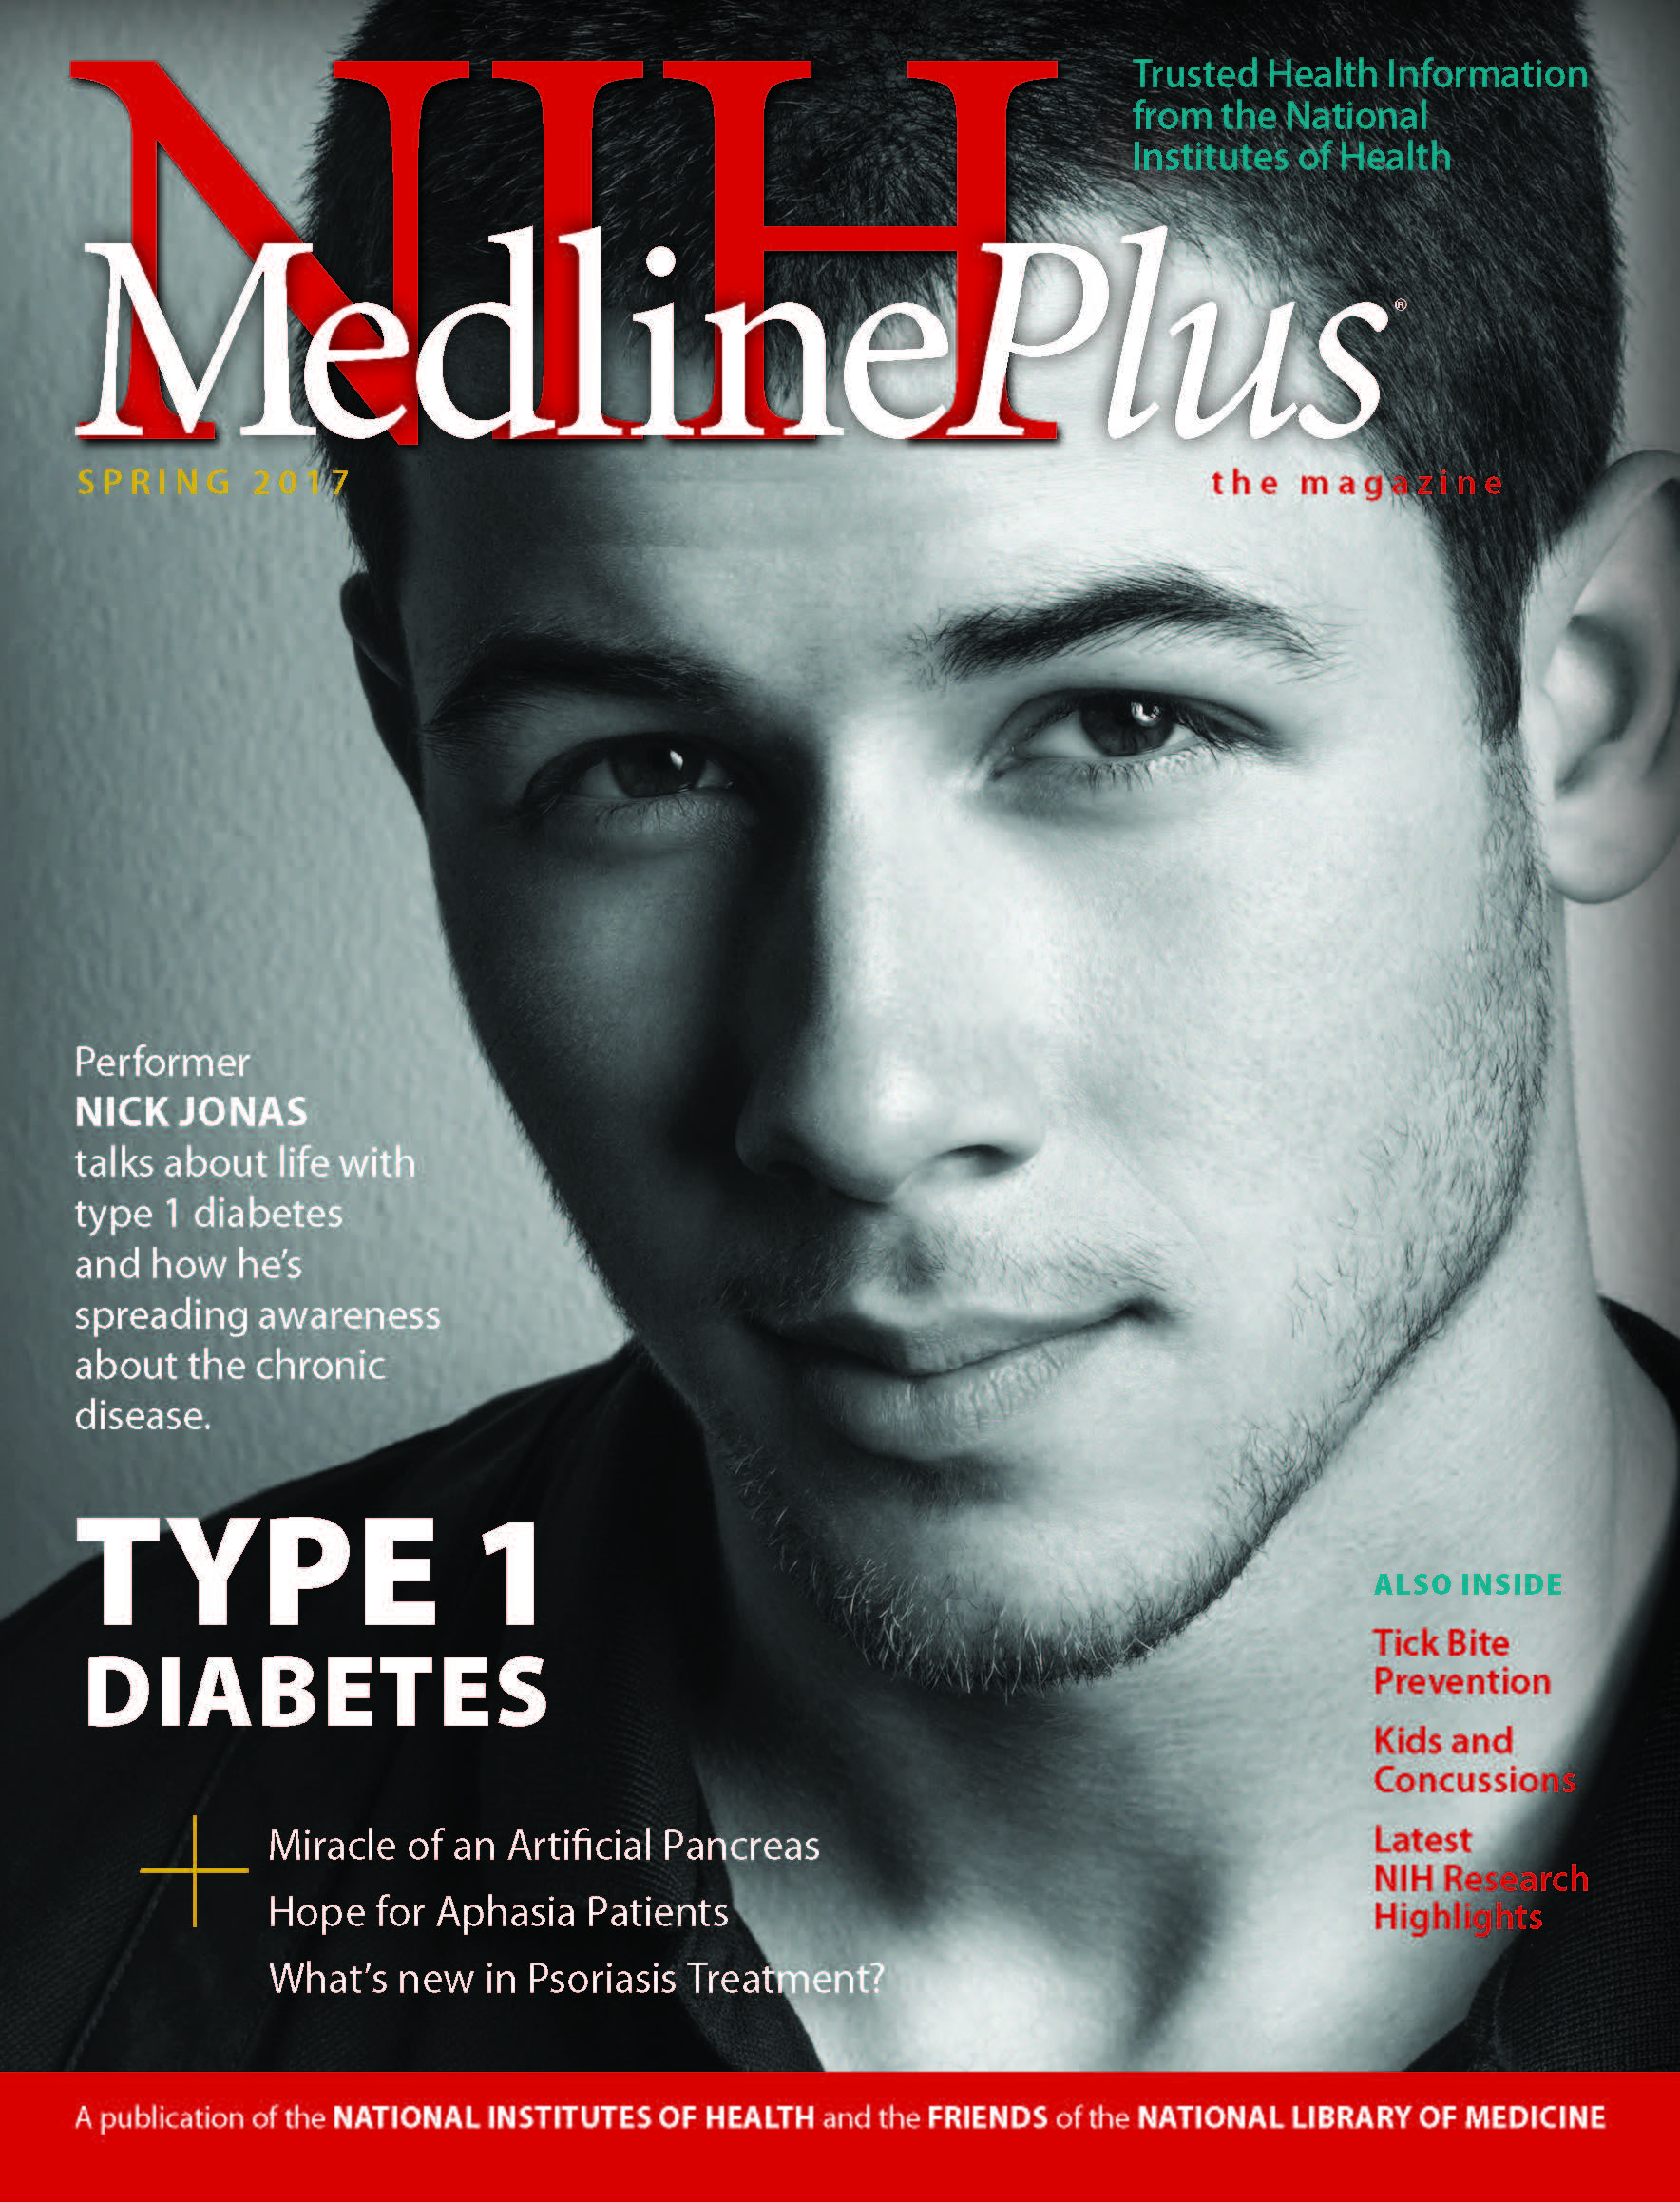 StratComm Awarded Contract by NLM to Produce MedlinePlus Magazine